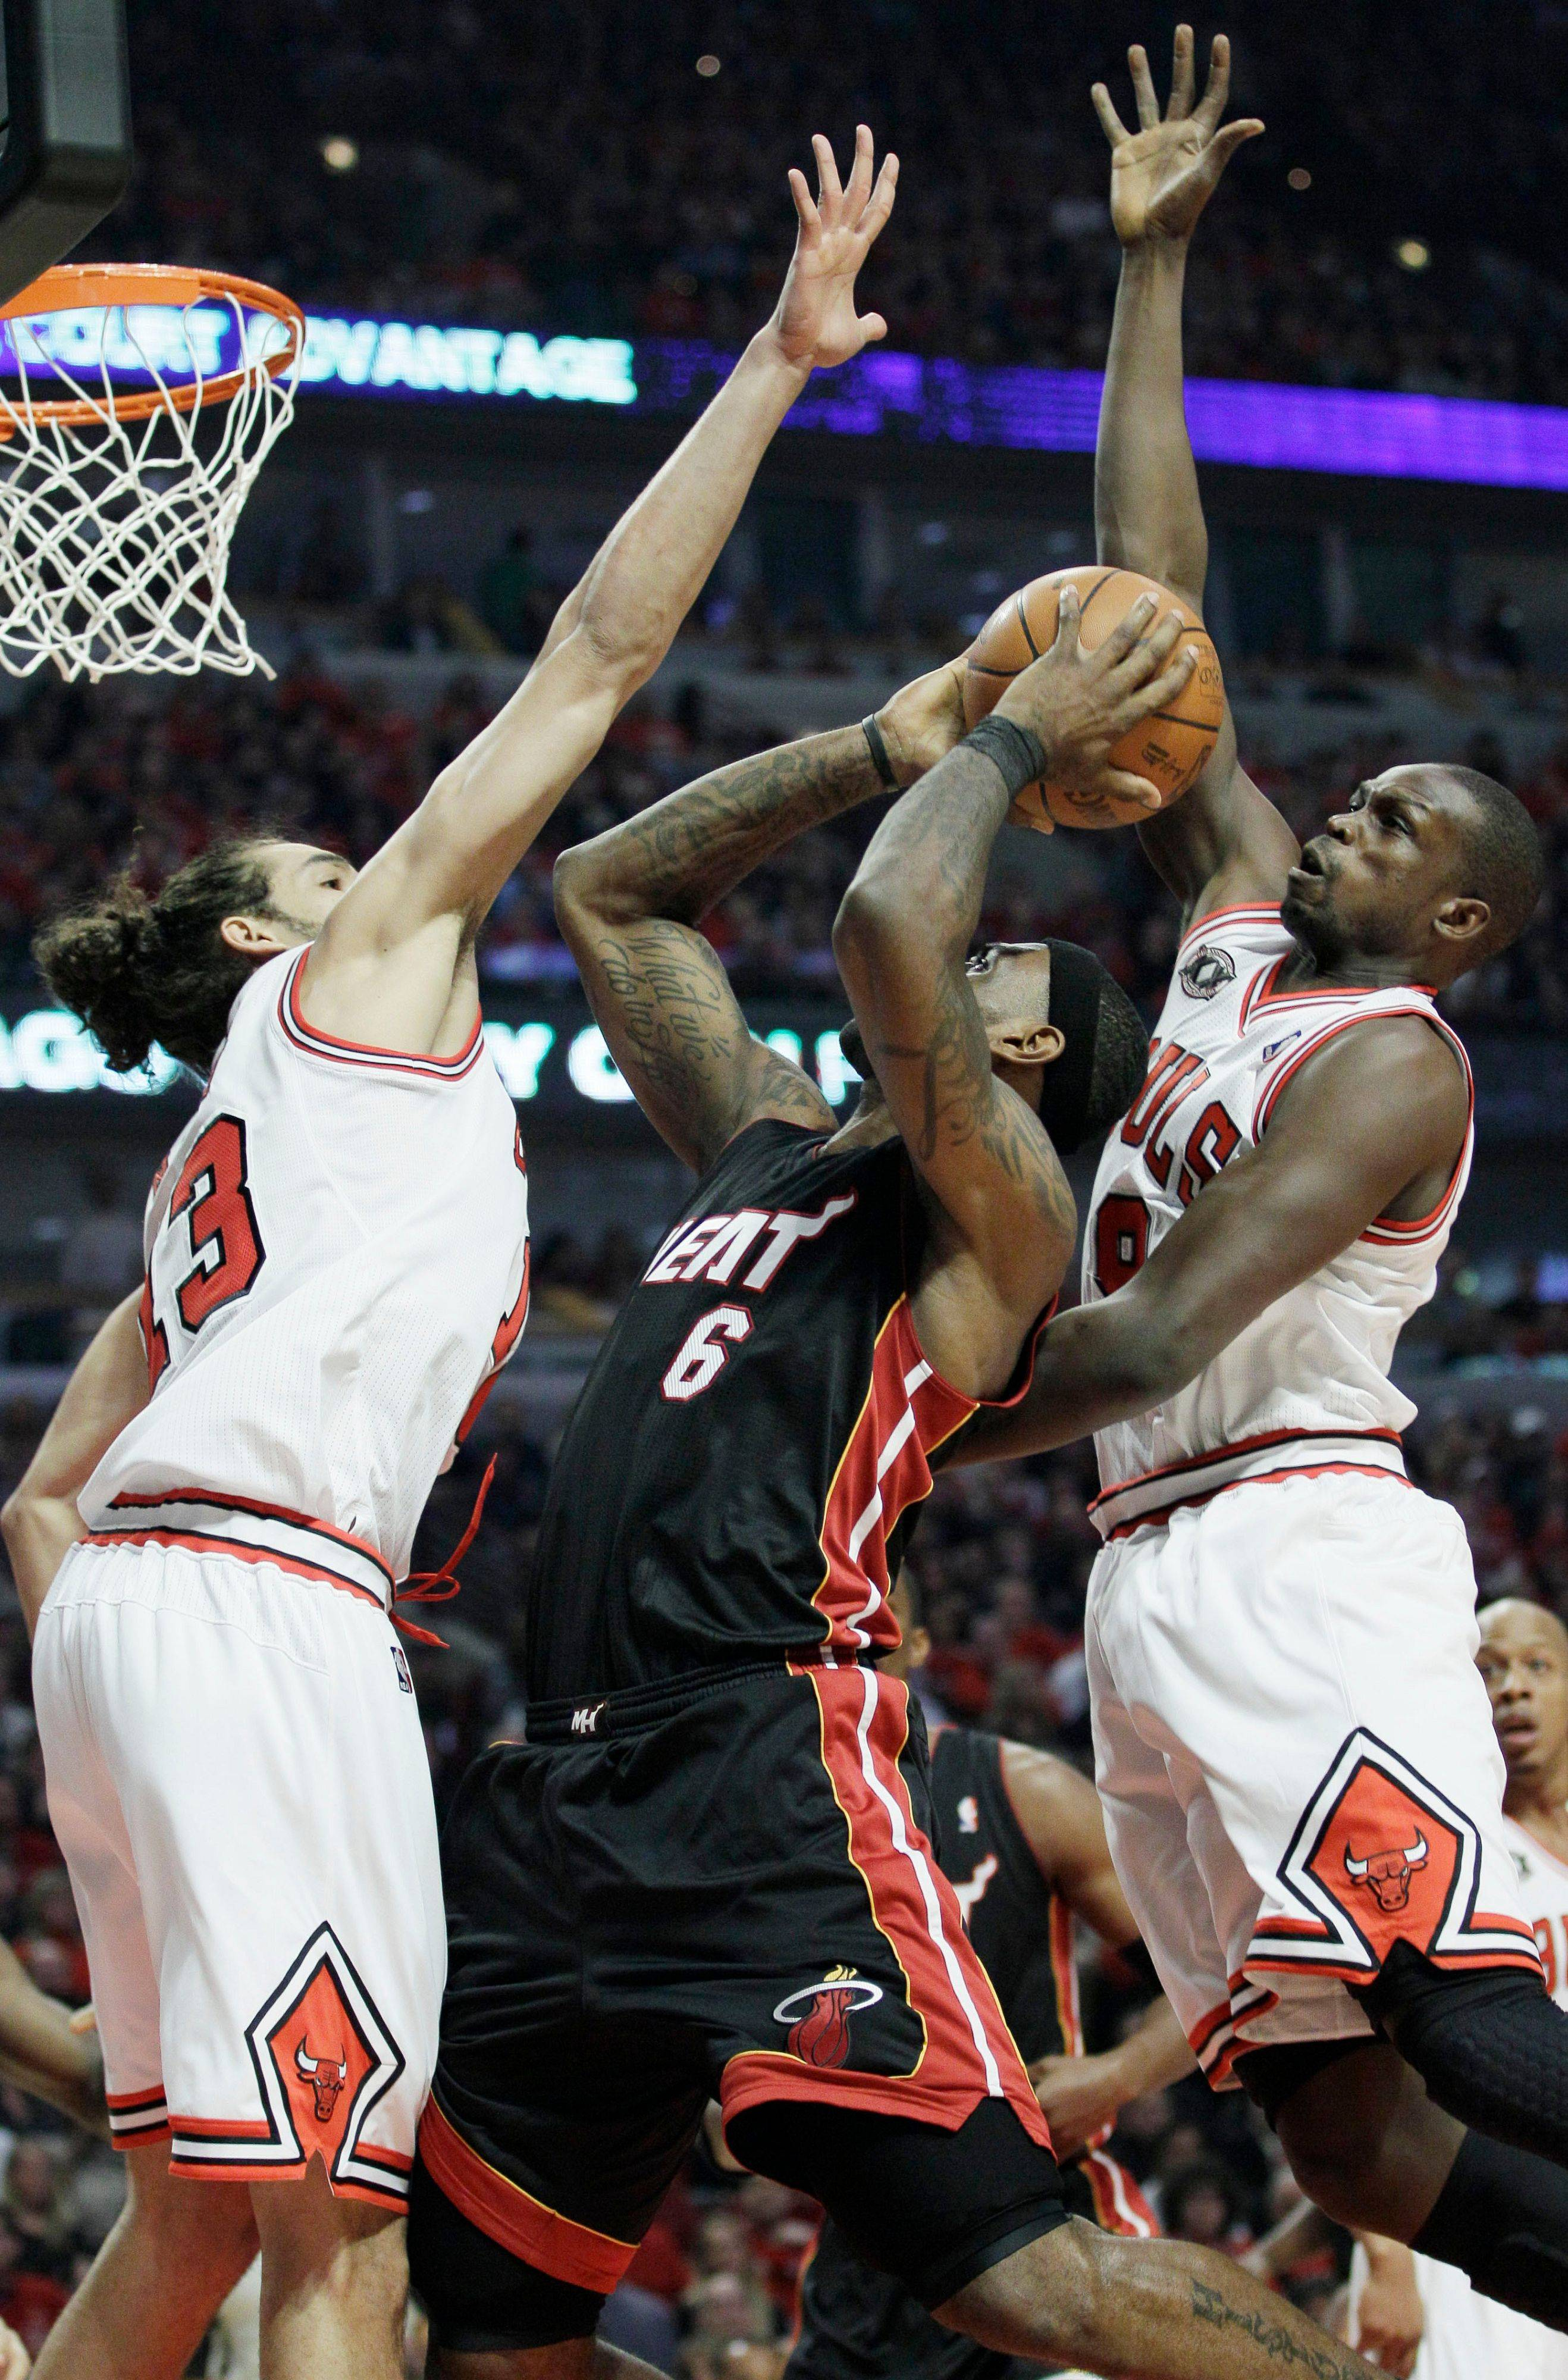 Miami Heat's LeBron James, center, goes up for a shot against Chicago Bulls' Joakim Noah, left, and Luol Deng during the first quarter.